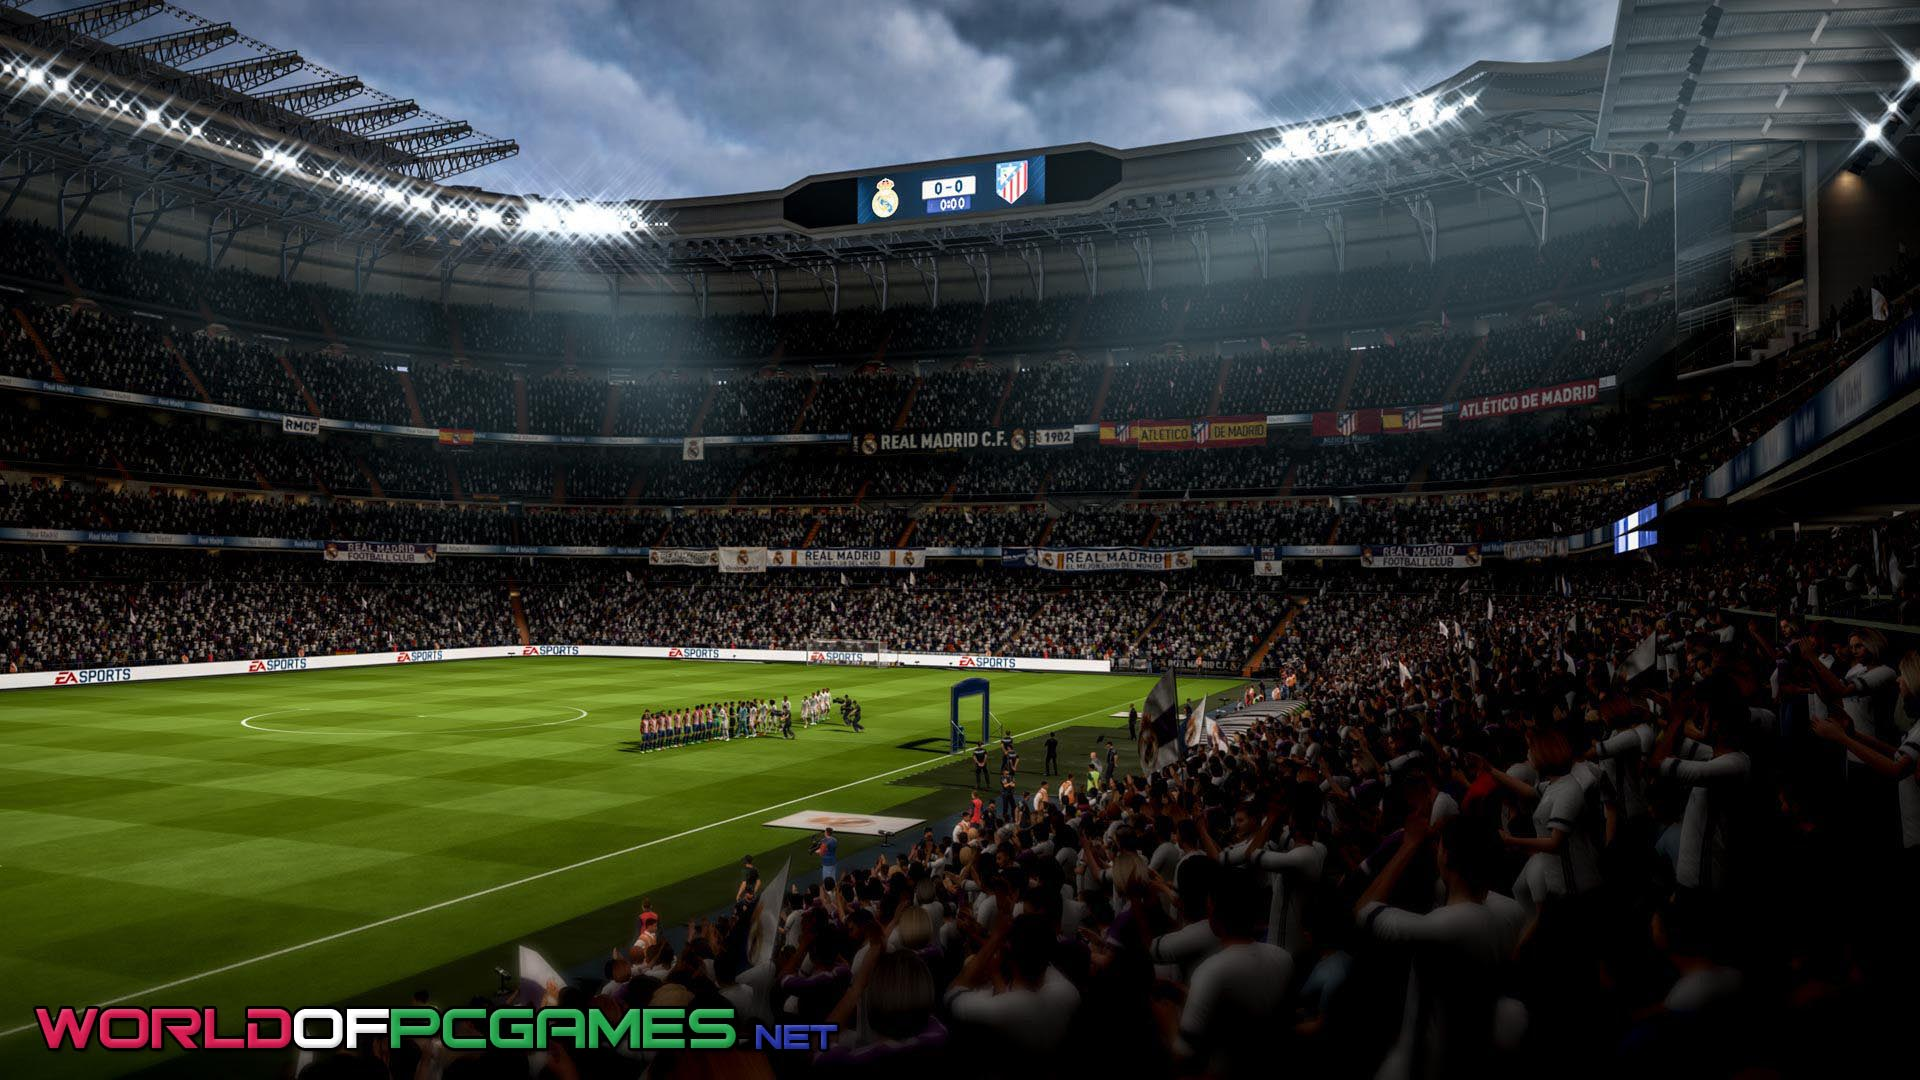 FIFA 18 Free Download By Worldofpcgames.net